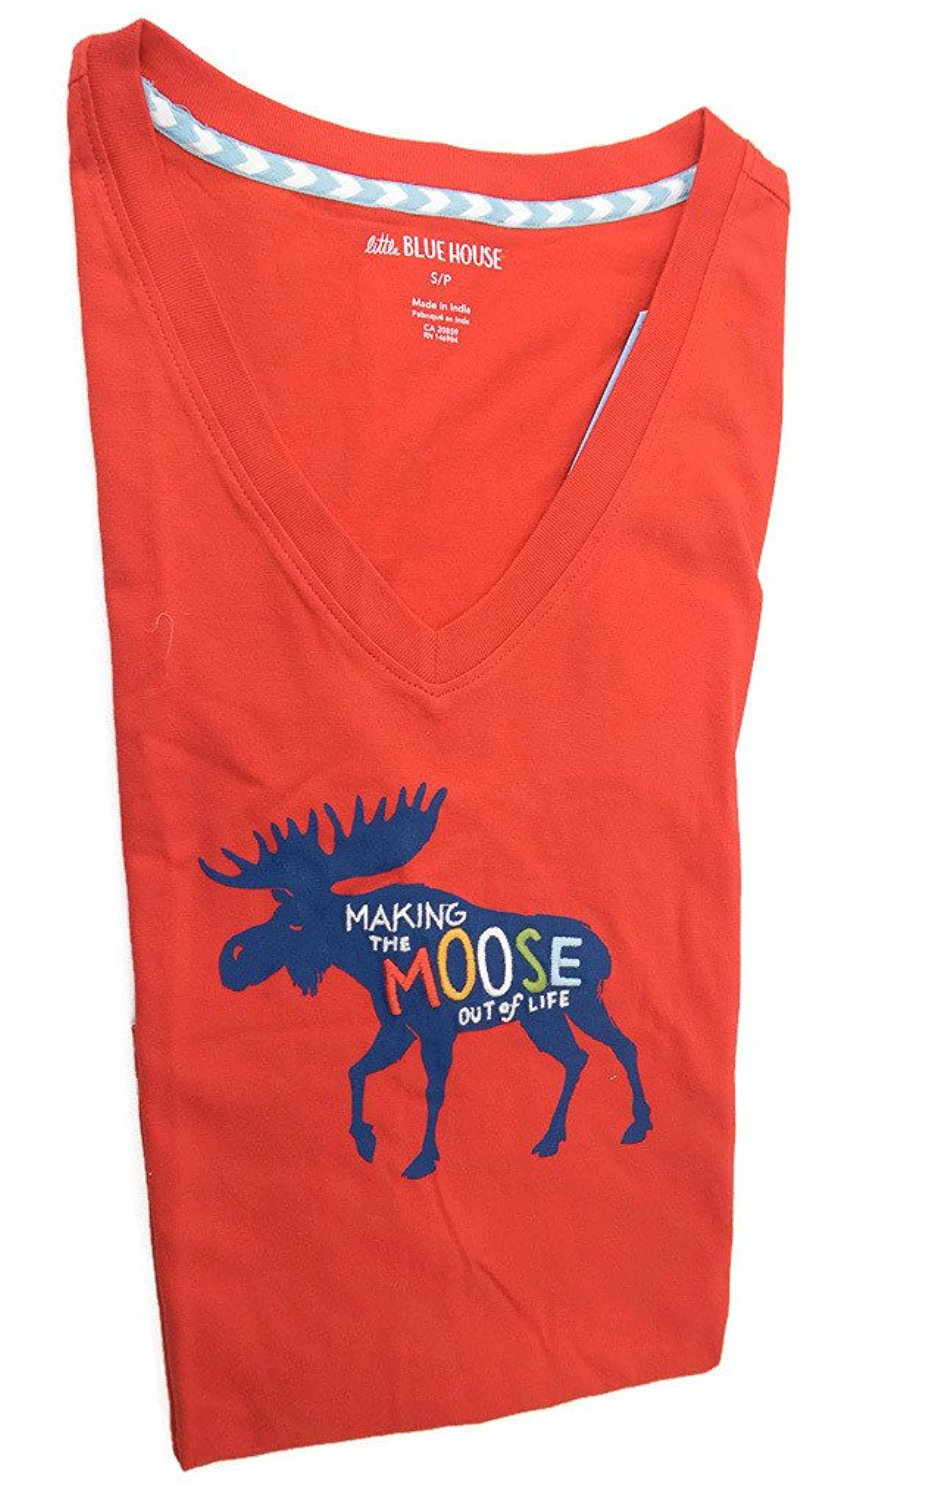 Little Blue House by Hatley Women's Classic Pajama Tee Making the Moose out of Life